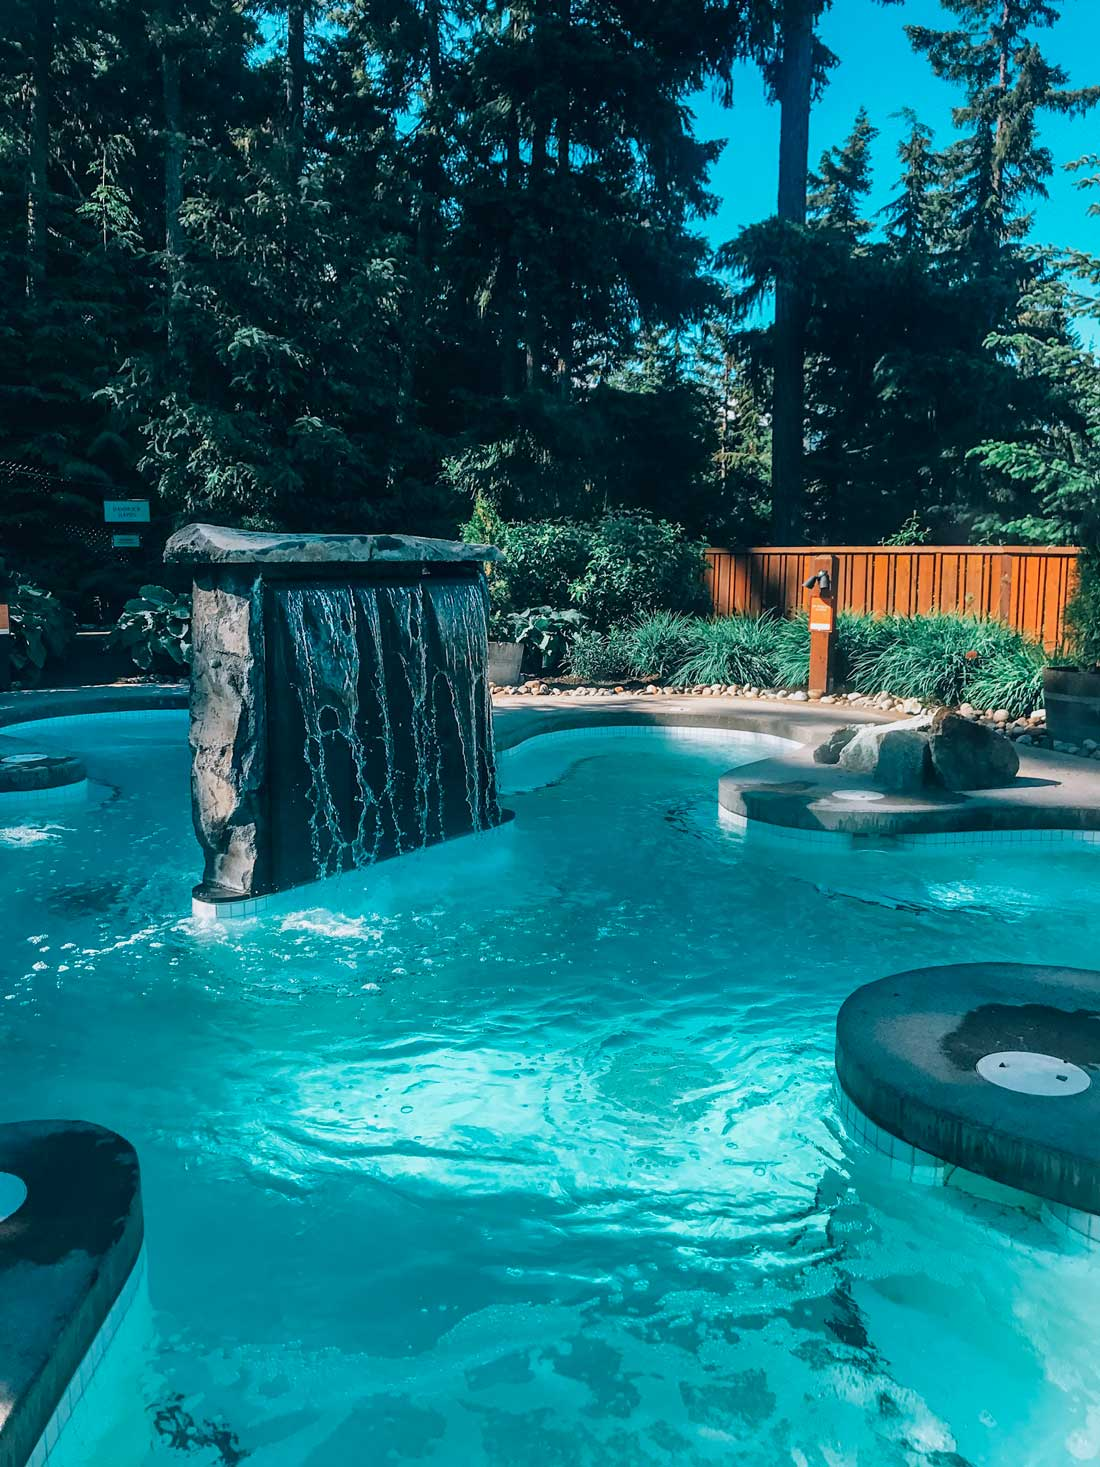 Scandinave spa is one of the best places to unwind in Whistler after a day exploring or on the slopes. #whistler #bc #canada #girlstrip #spa